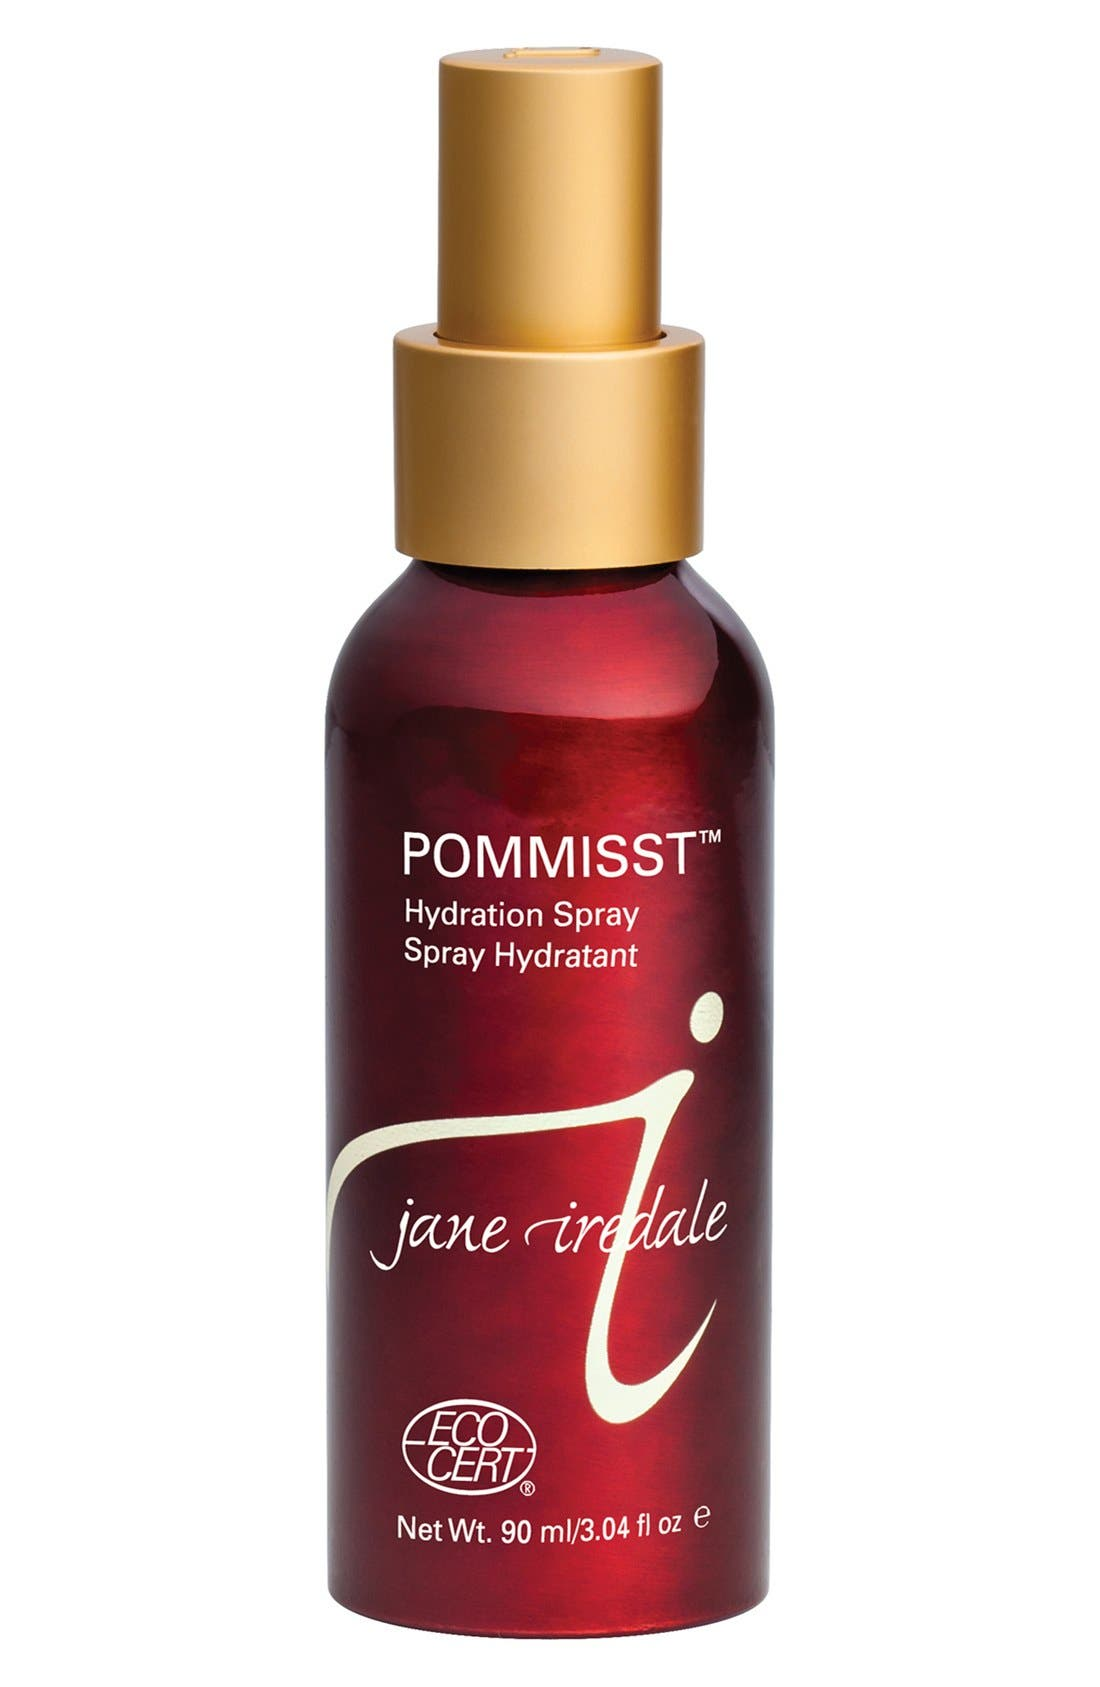 jane iredale Pommisst™ Hydration Spray